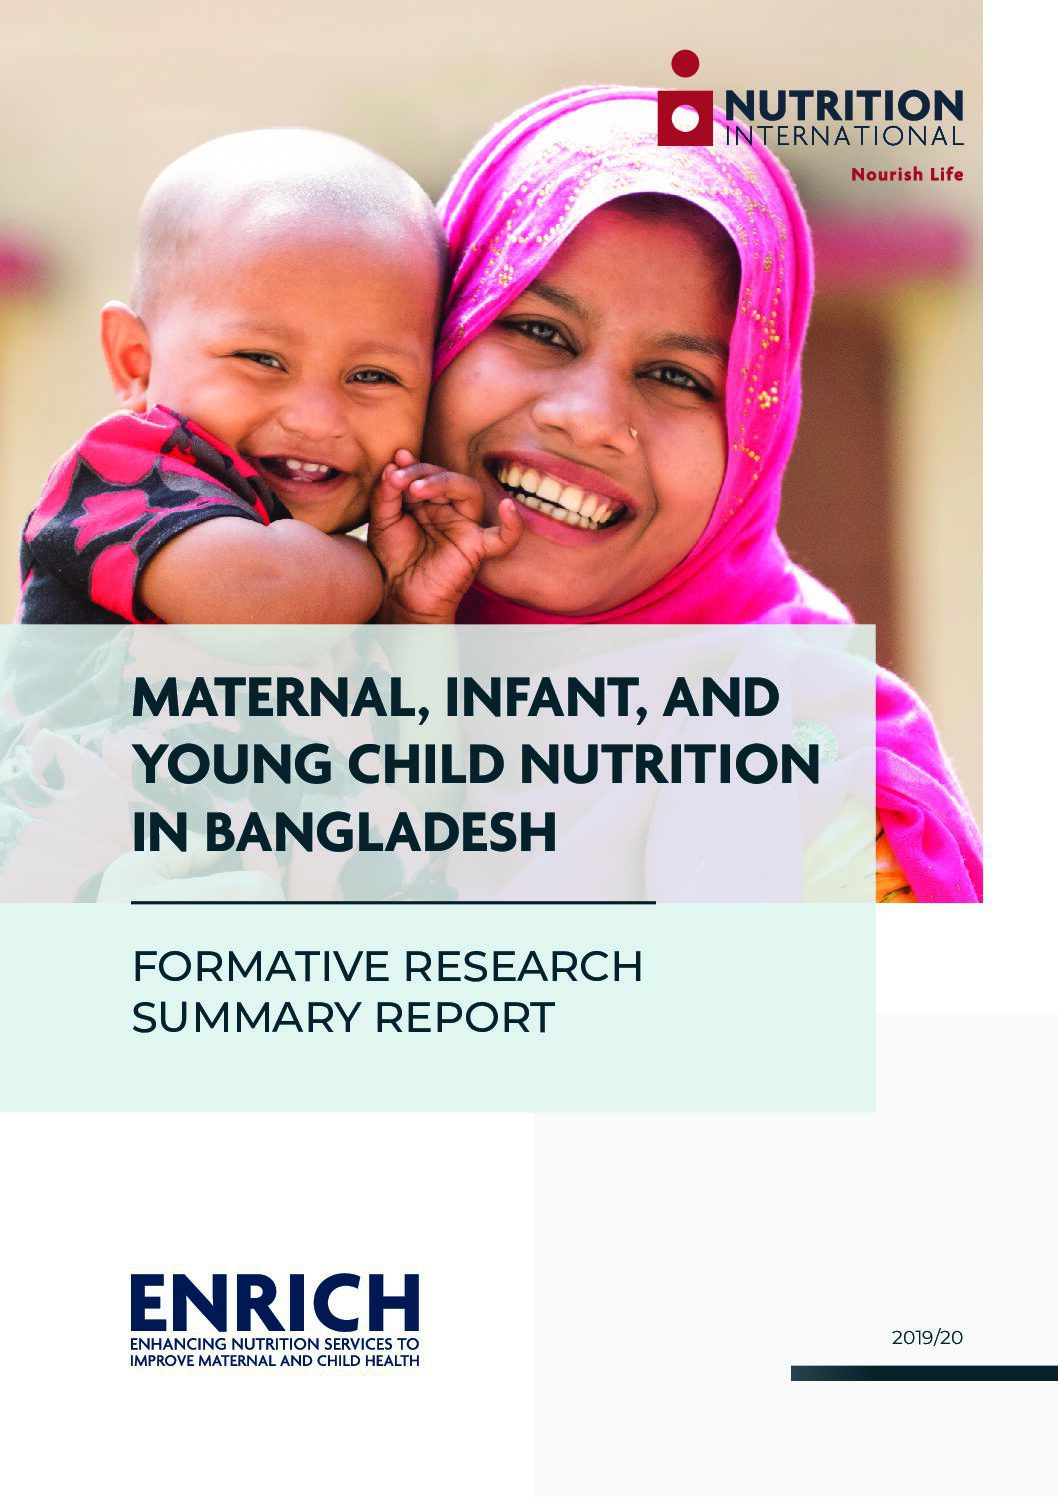 Maternal, Infant, and Young Child Nutrition in Bangladesh: Formative research summary report thumbnail